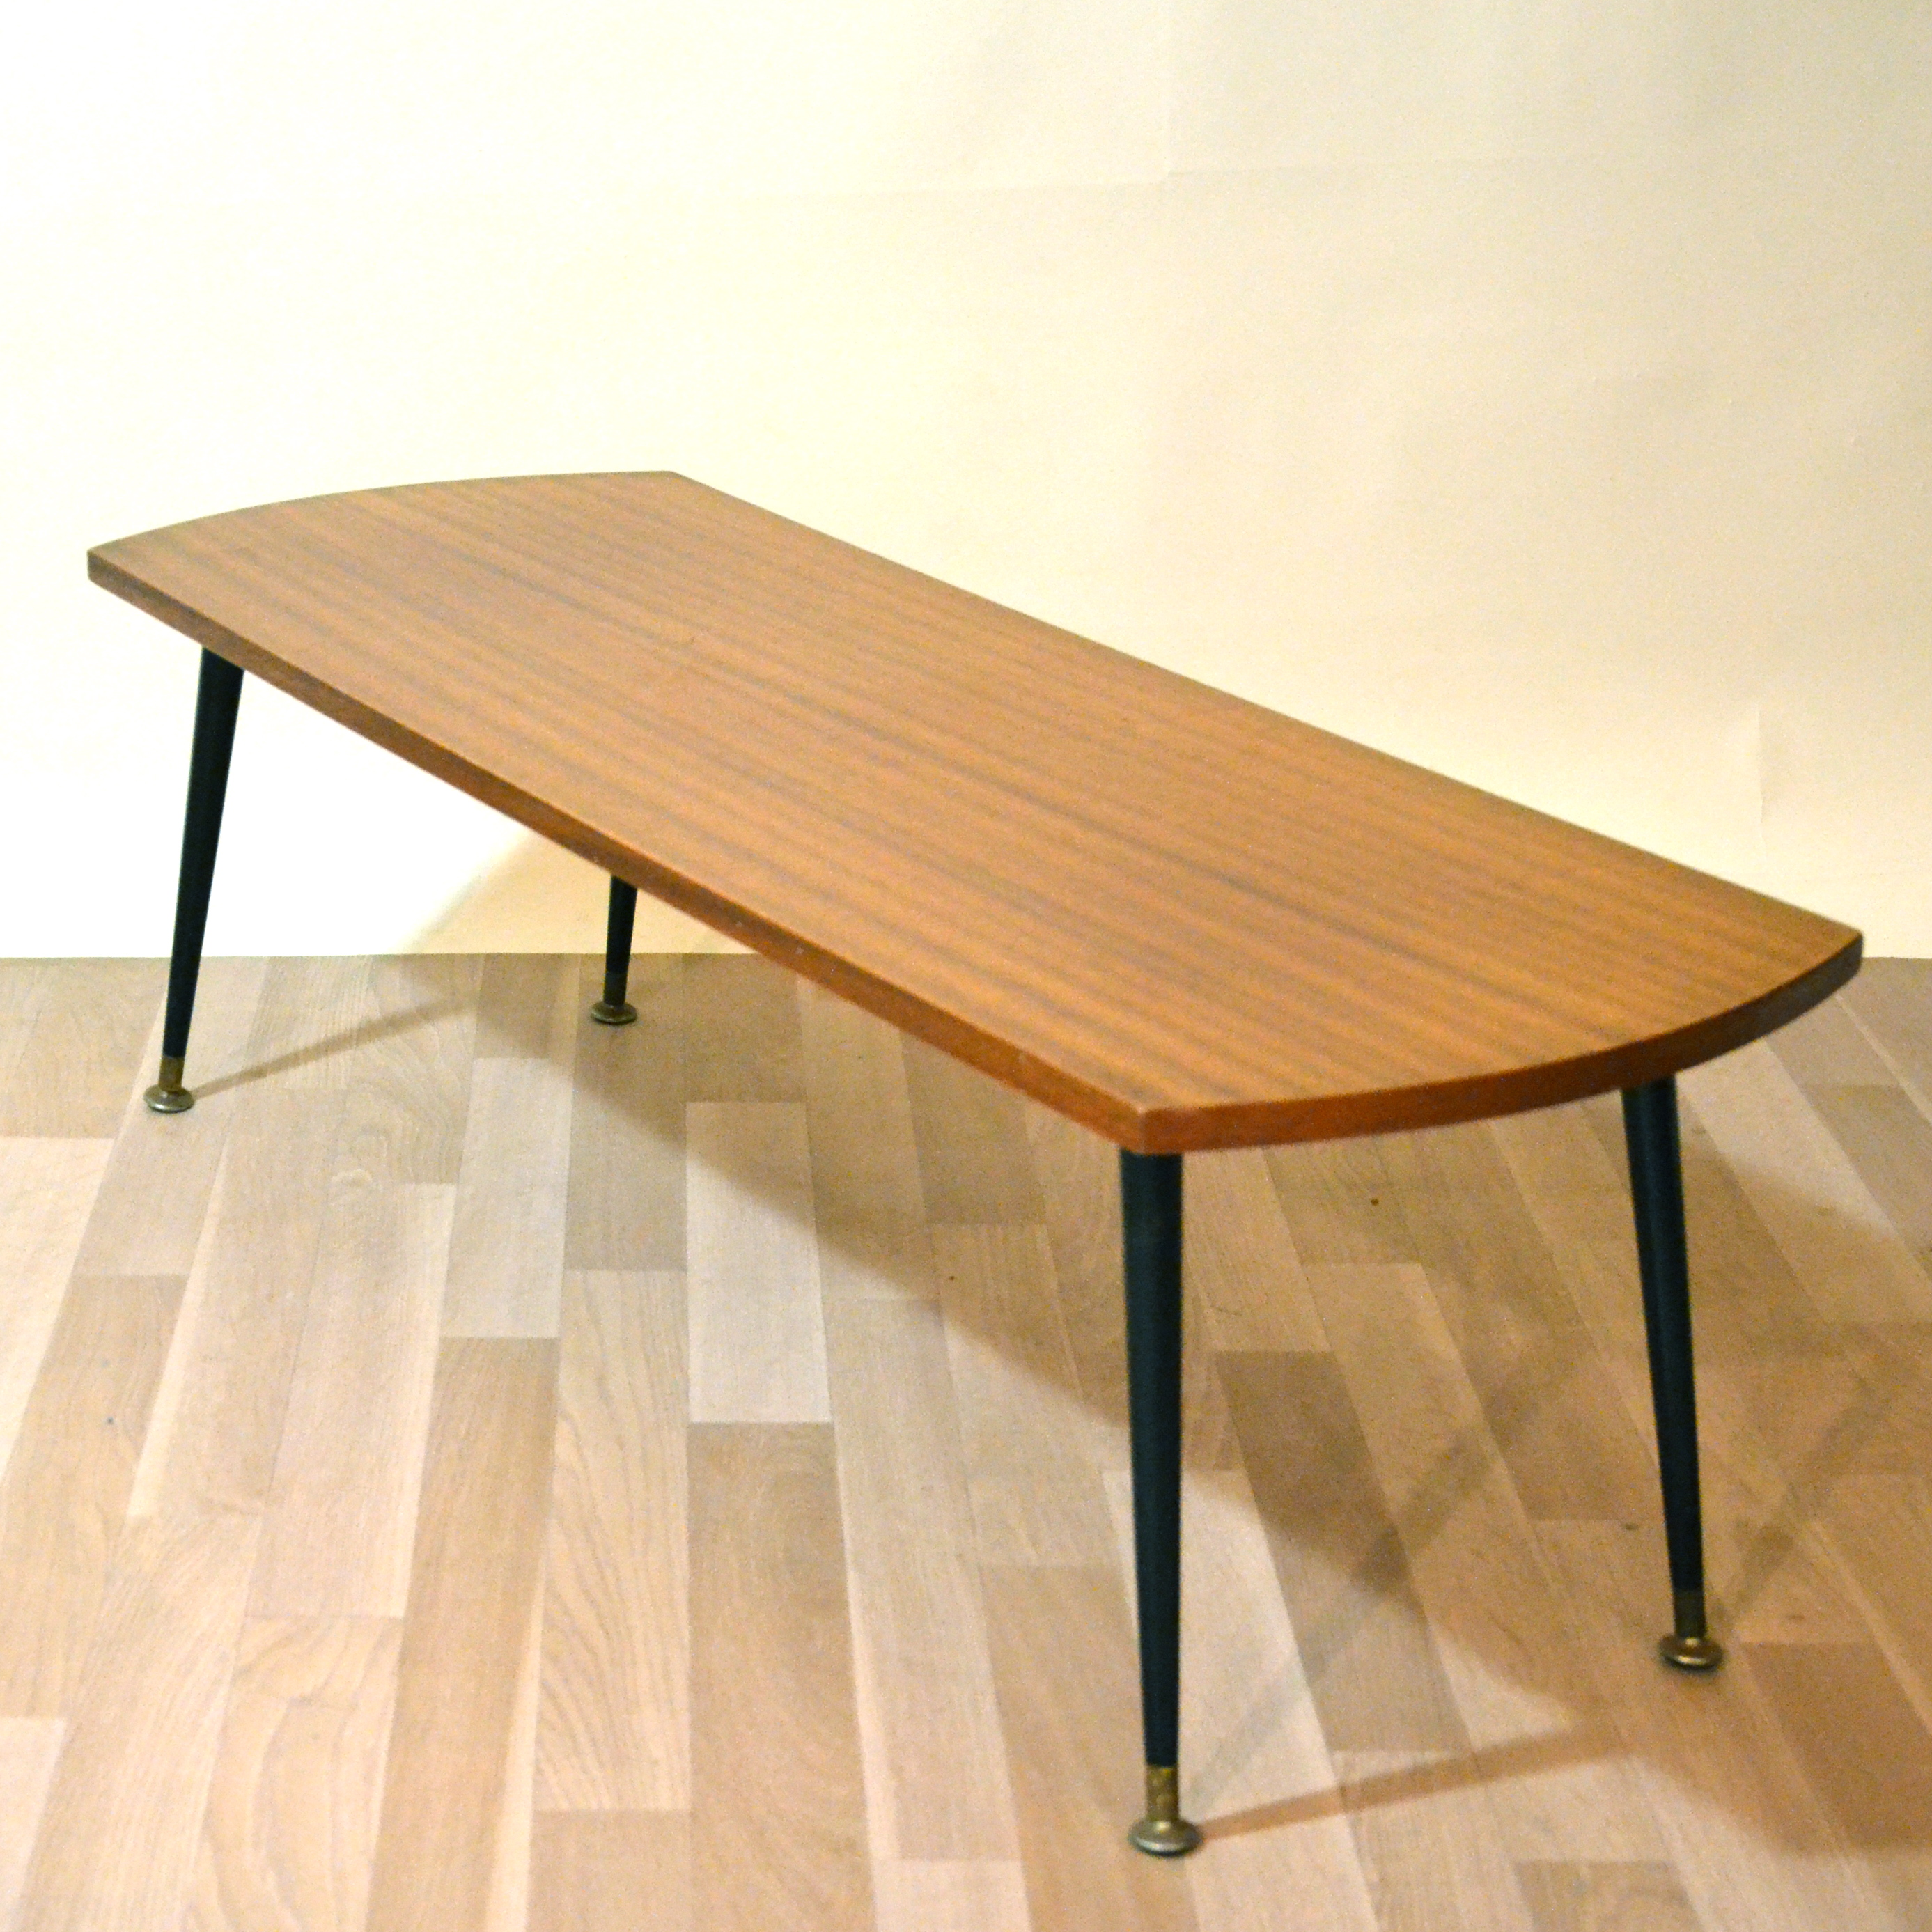 Table basse scandinave fine bindies for Pied table basse scandinave